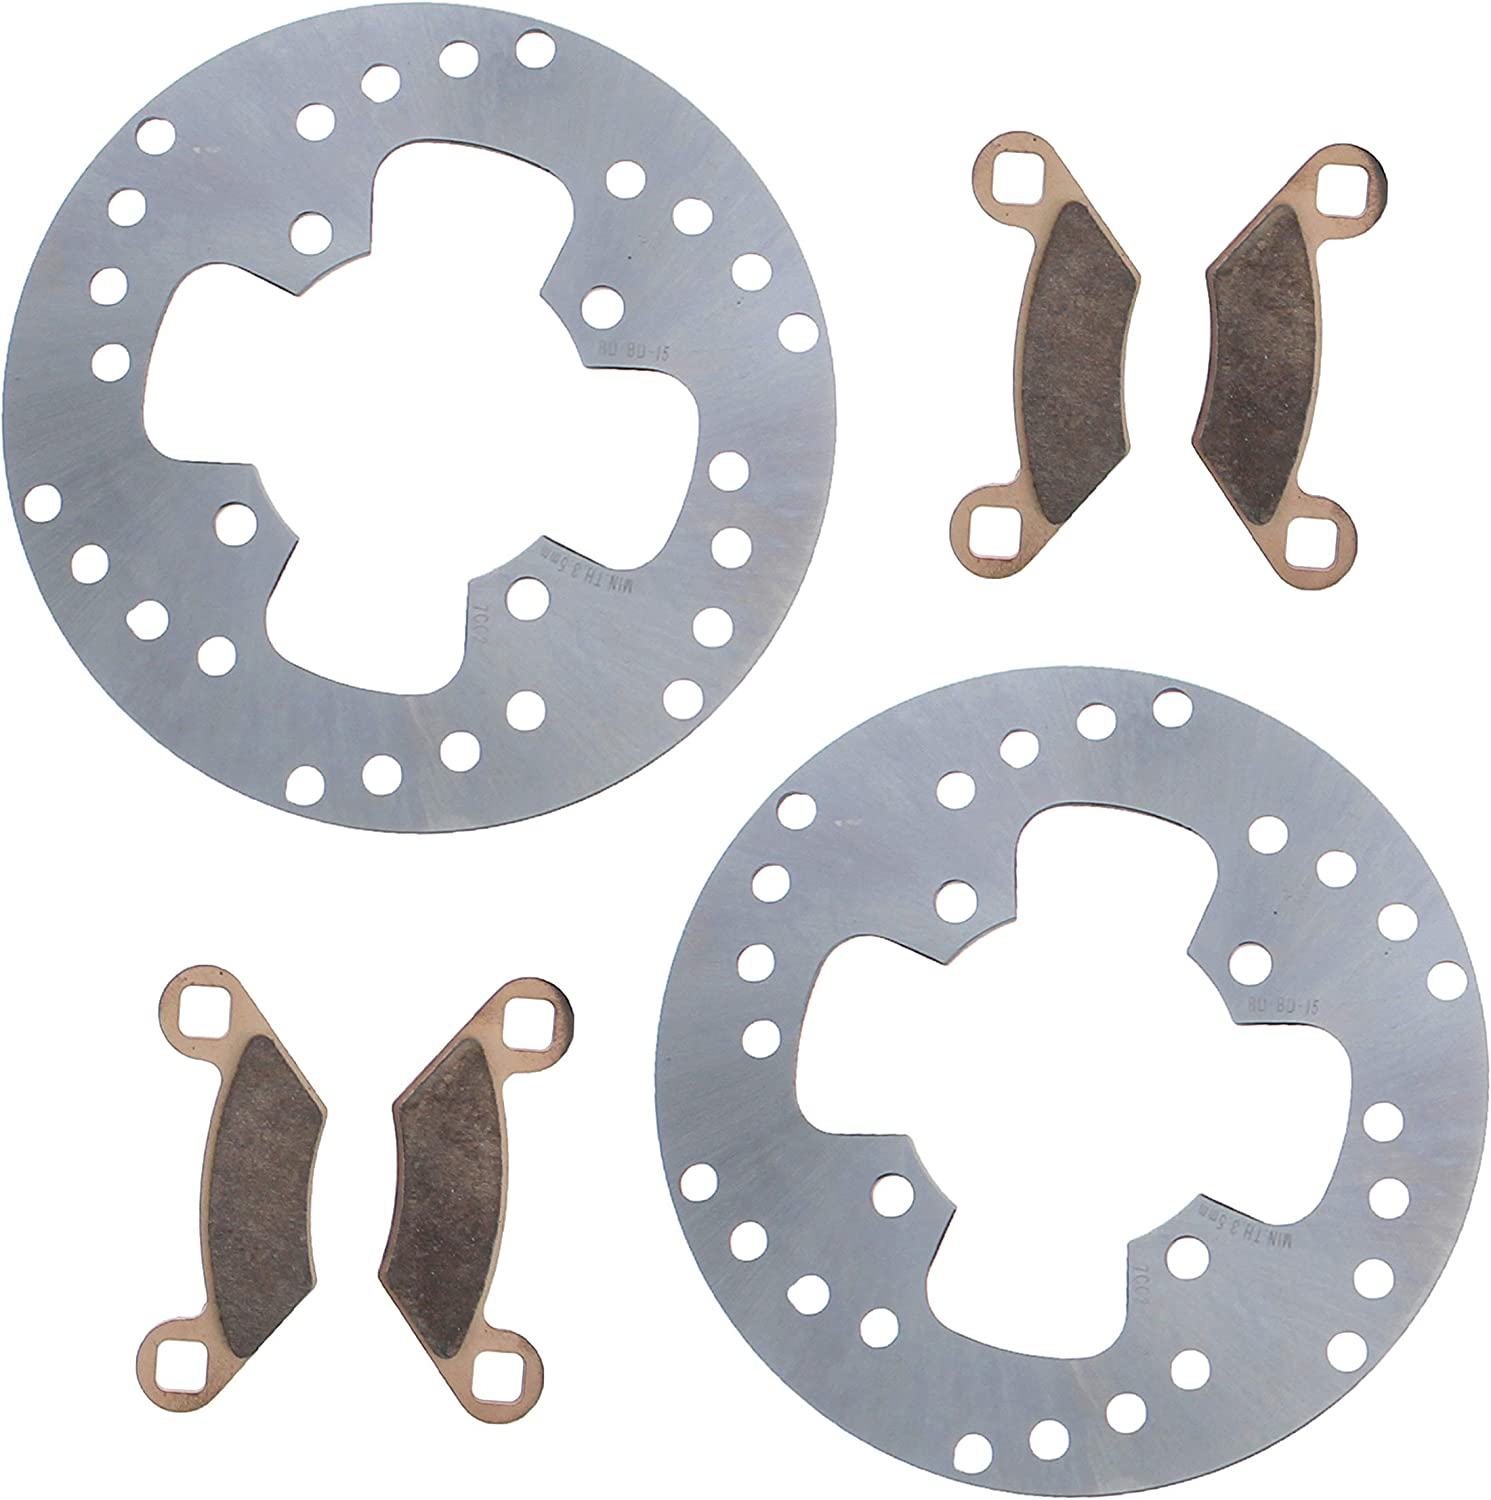 Front Rear Brake Pads For Polaris Magnum 500 2001 Magnum 500 4X4 HDS 2001